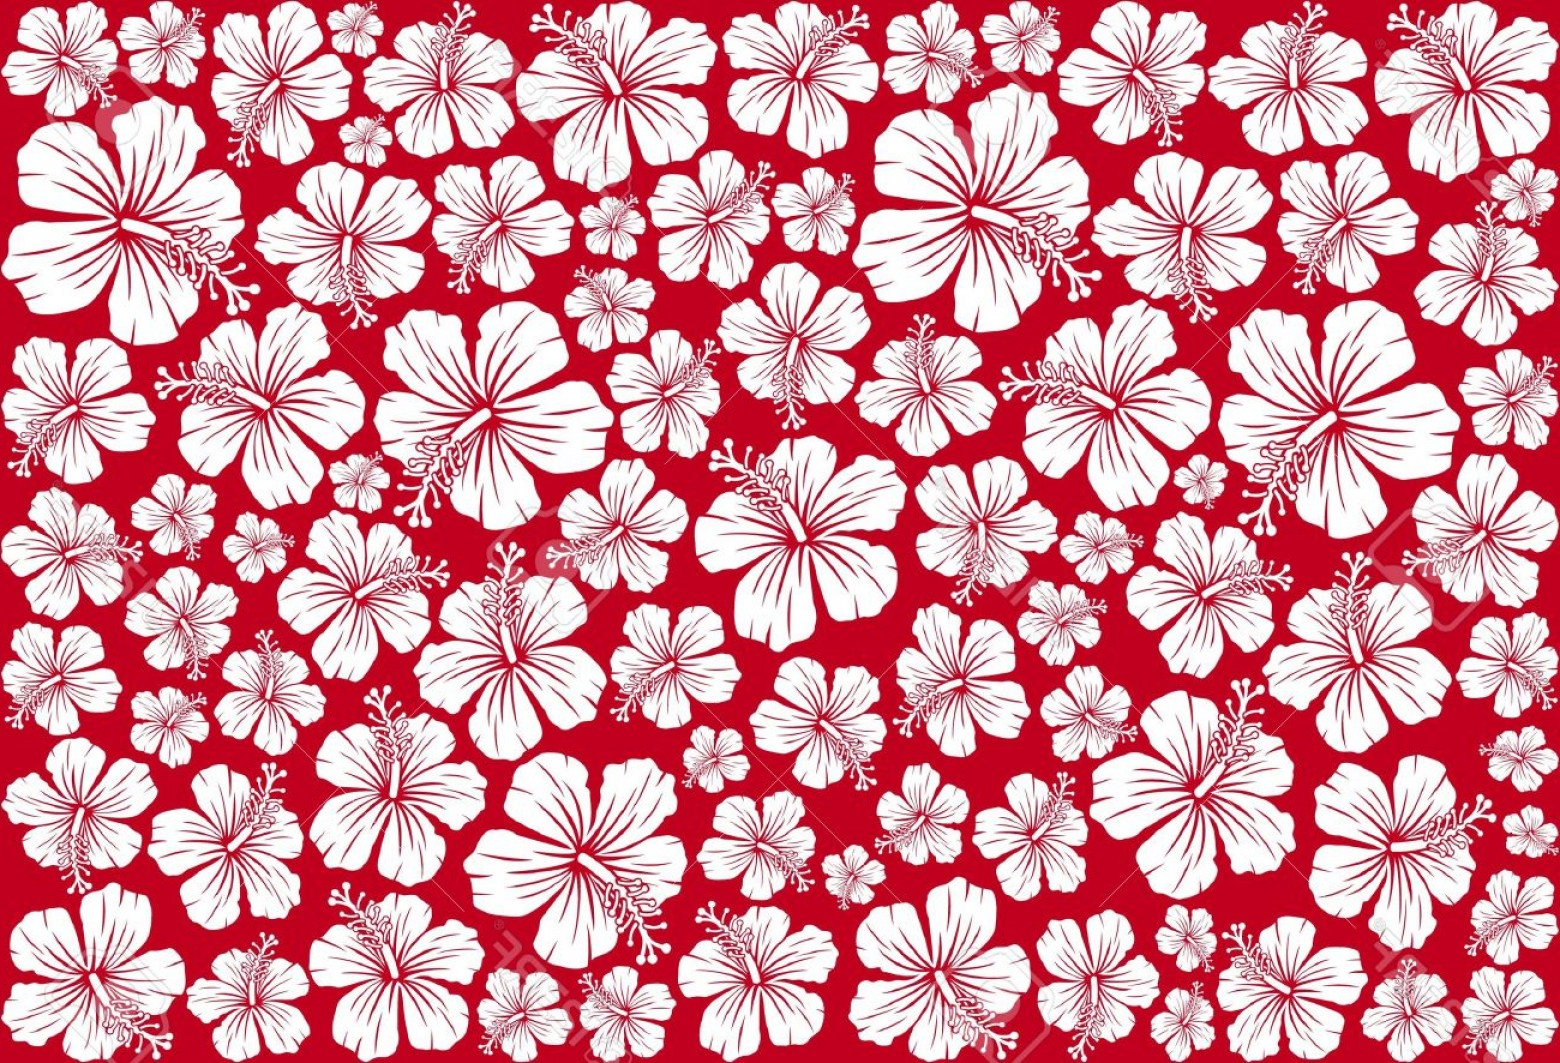 Hawaiian Flower Seamless Vector Pattern: Trendy Photoseamless Floral Pattern Whit Hibiscus Hibiscus Pattern Seamless Hawaiian Pattern Wallpaper Seamless